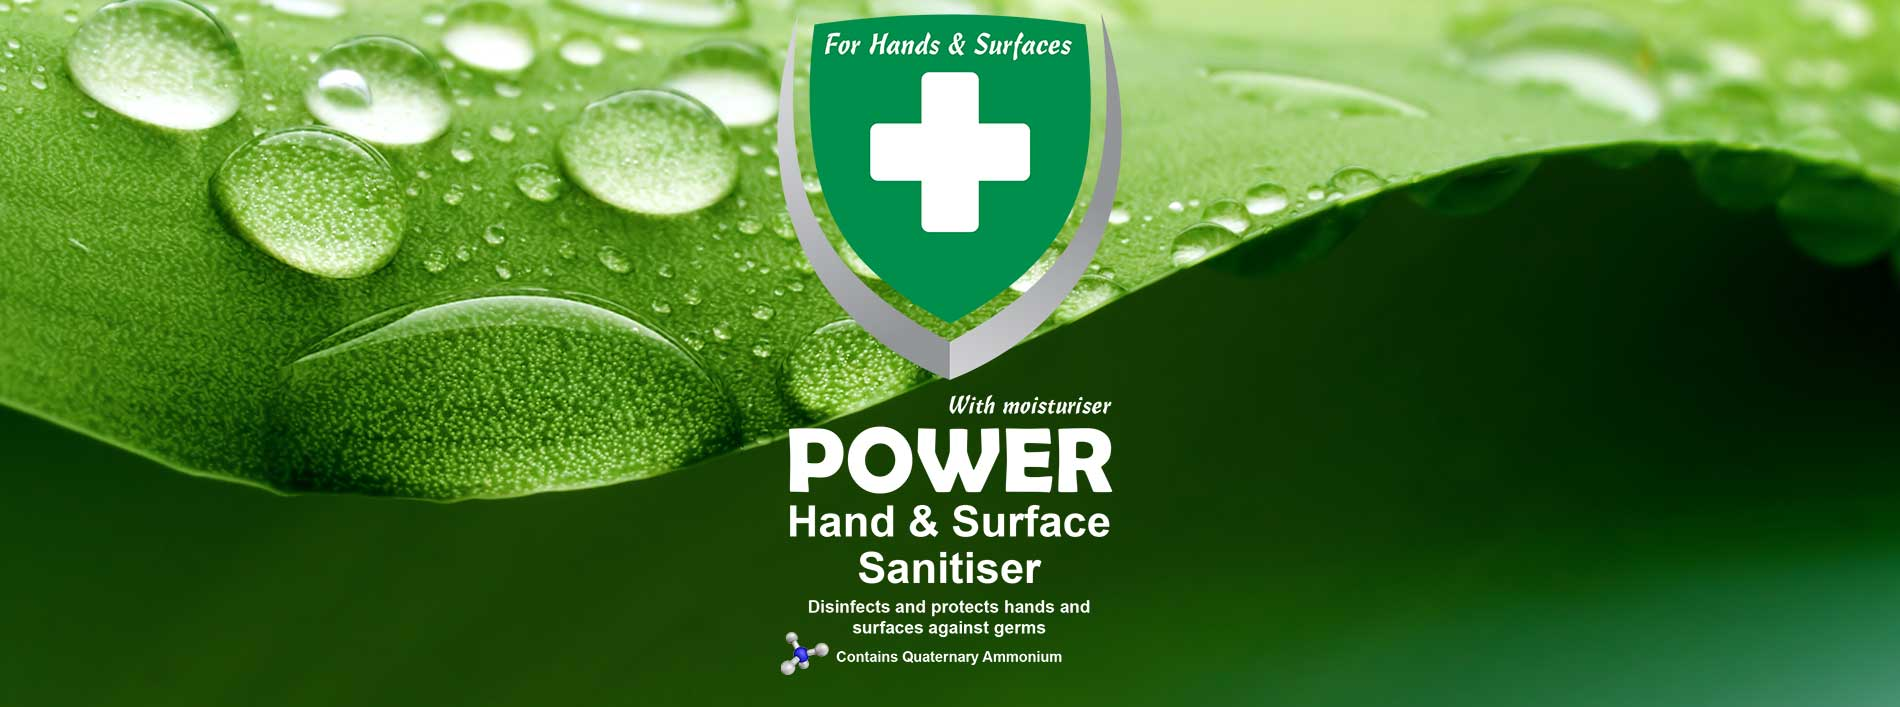 POWER Hand and Surface Sanitiser by Promek